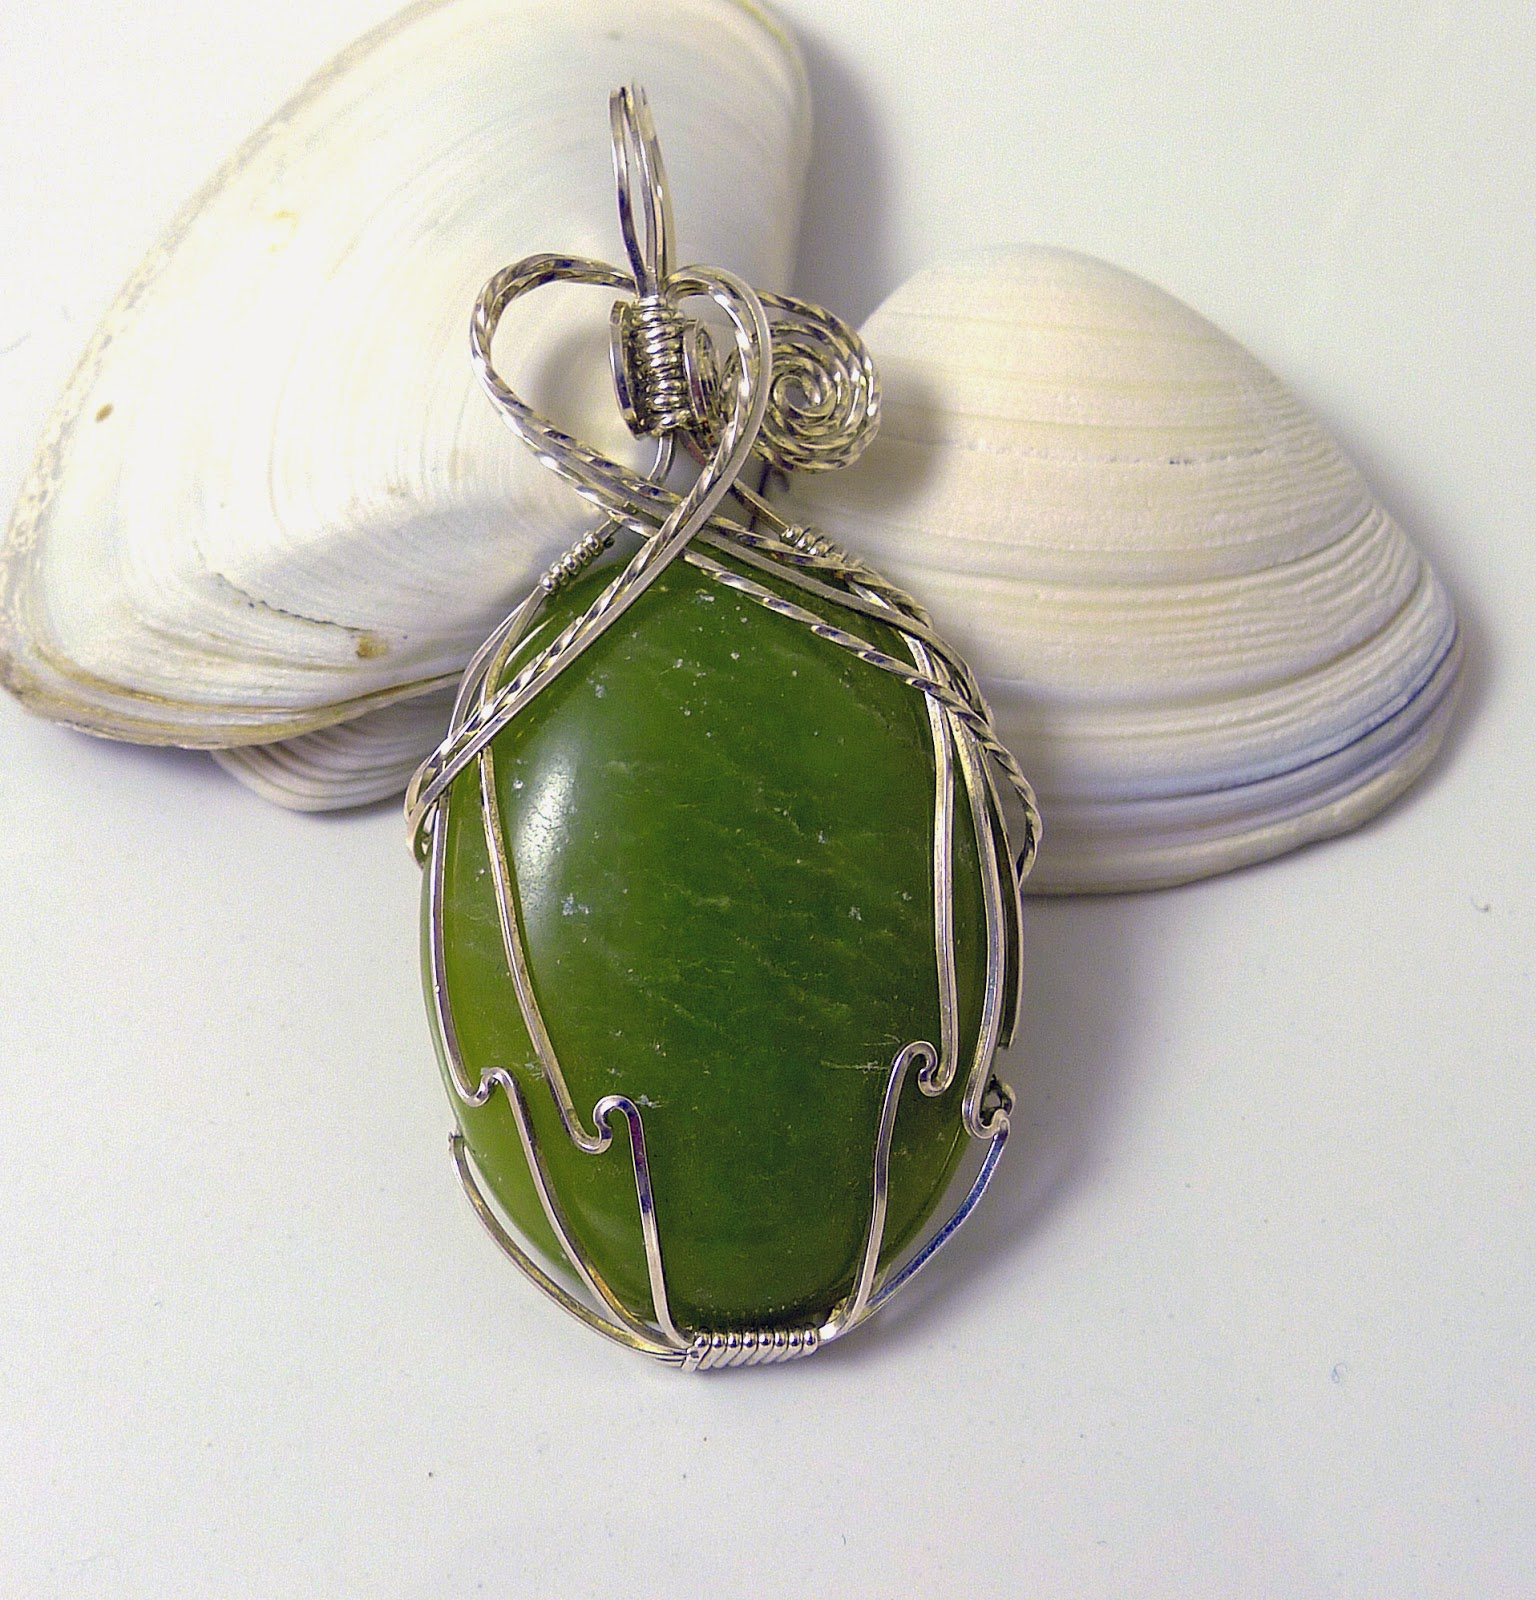 https://www.etsy.com/nz/listing/184099223/green-agate-and-sterling-silver-pendant?ref=shop_home_active_1